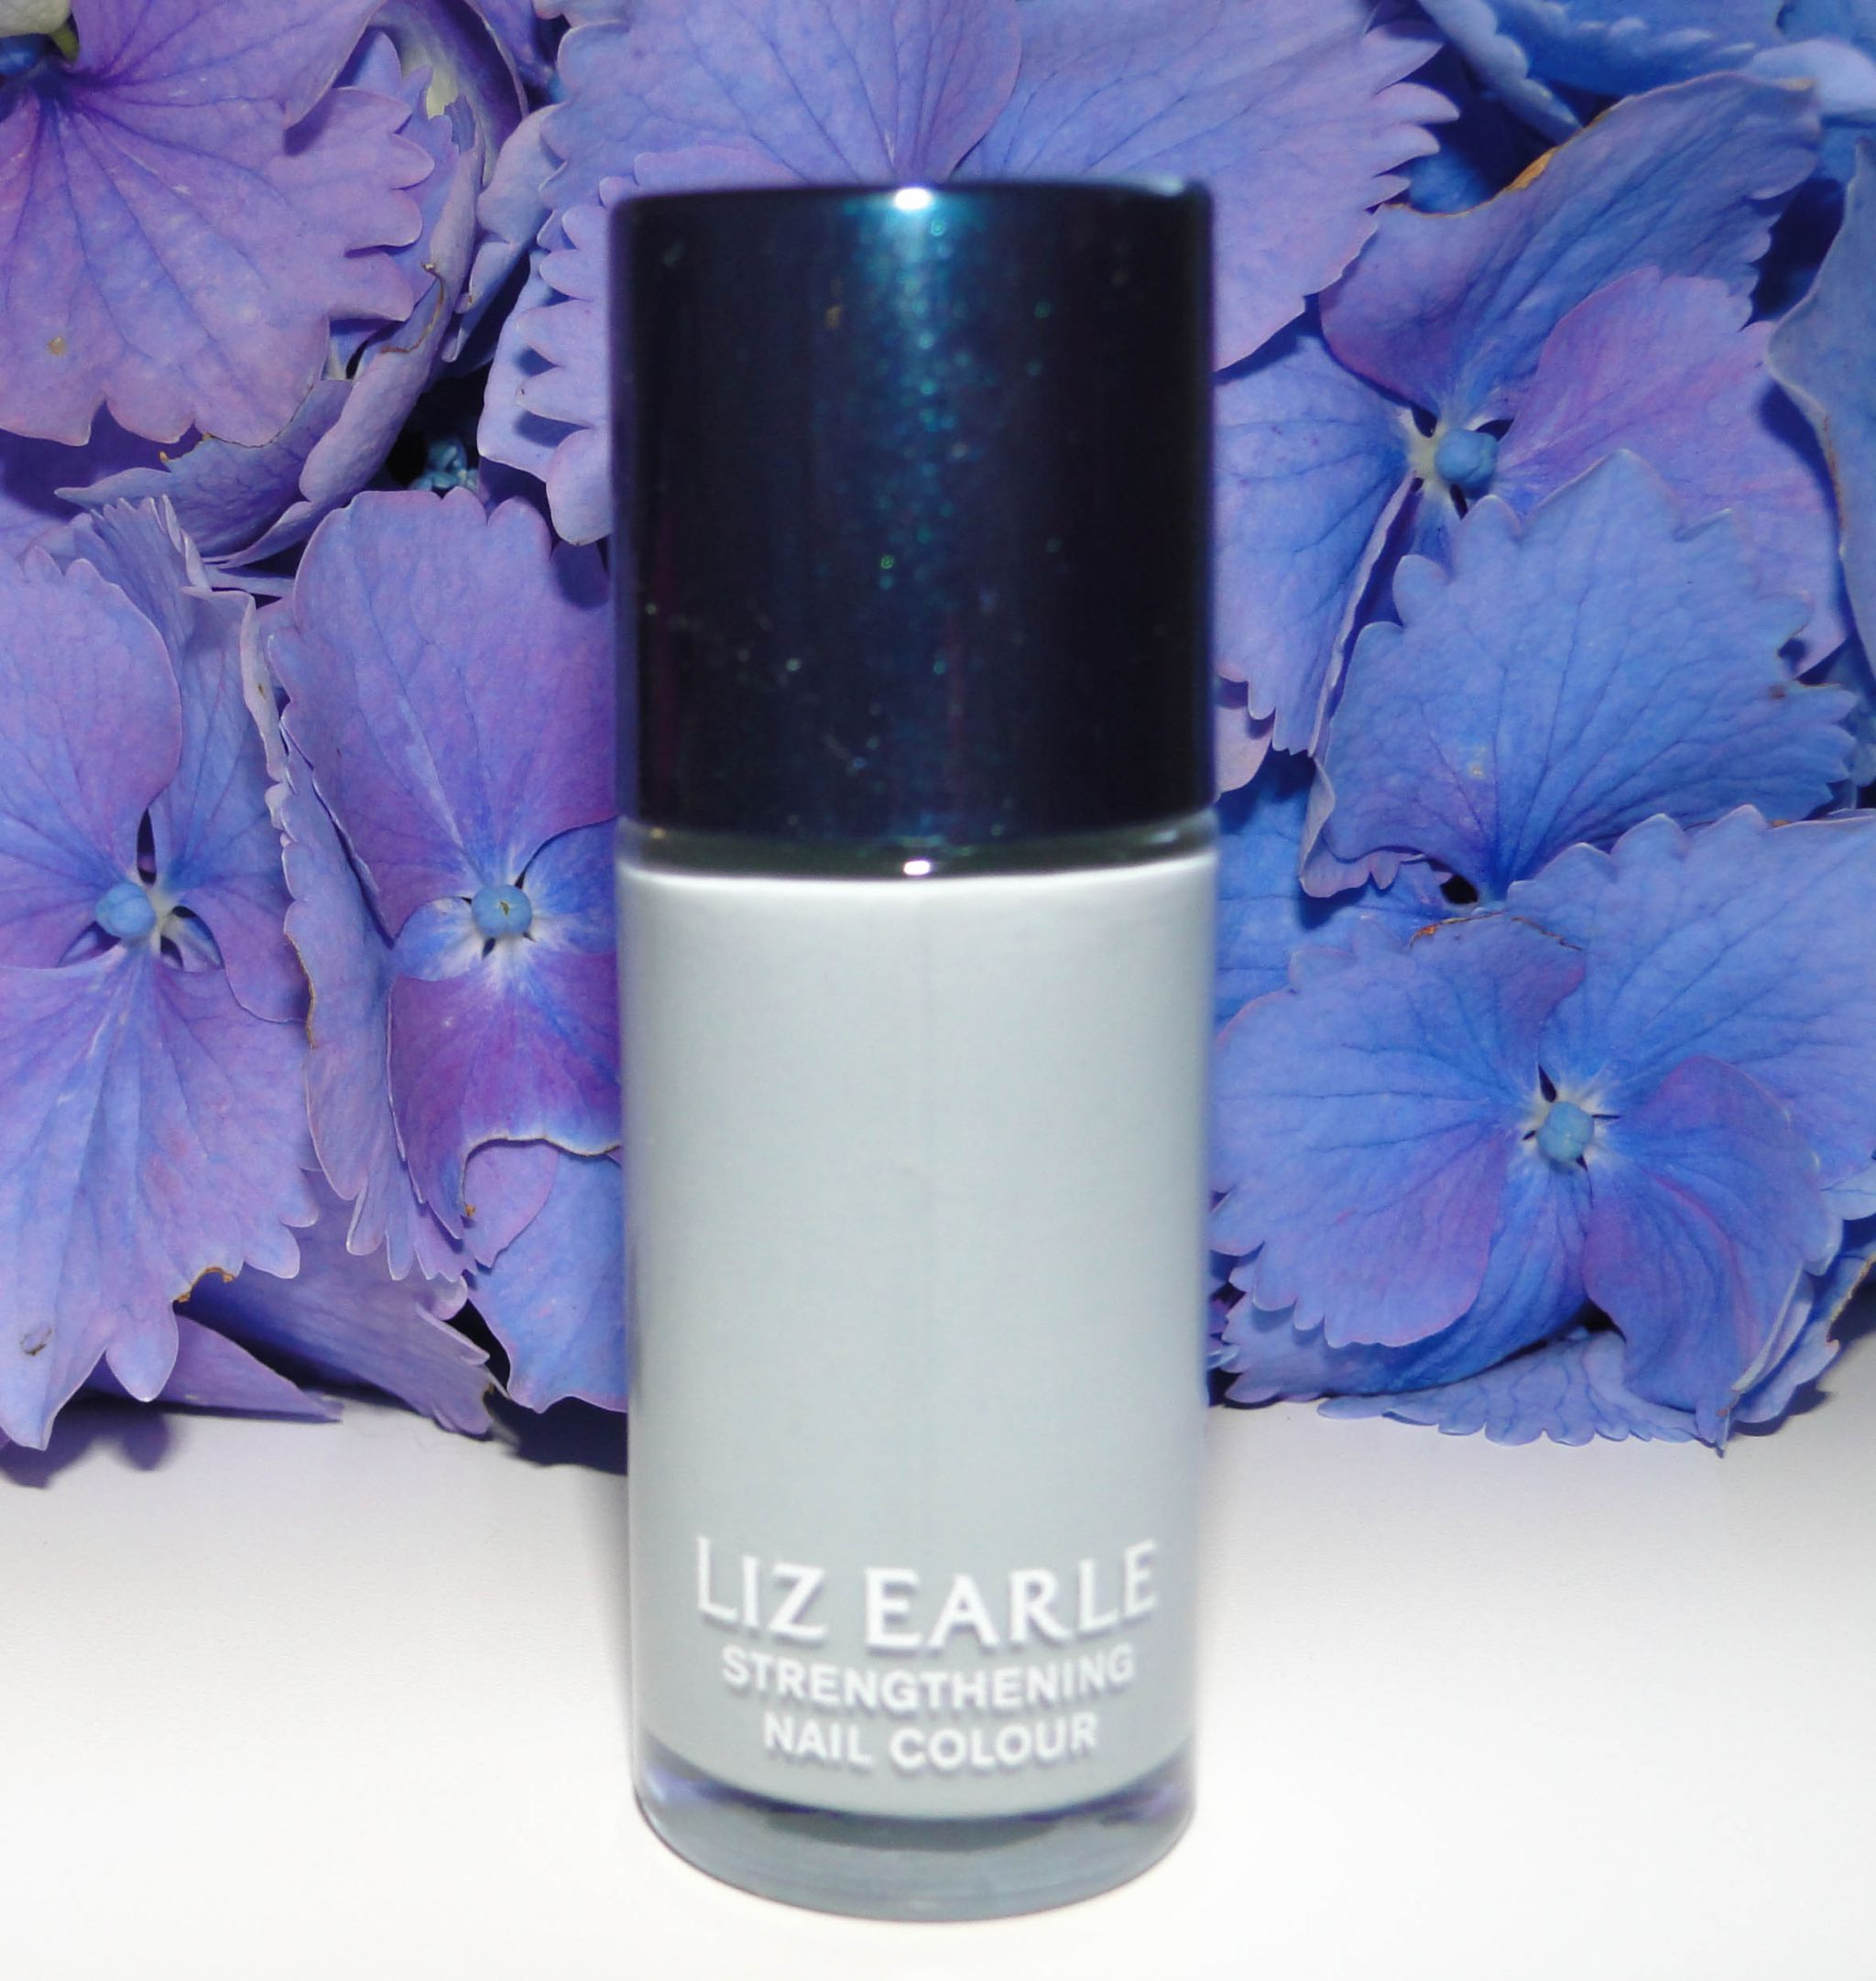 Liz Earle Strengthening Nail Colour - Moonlight-3